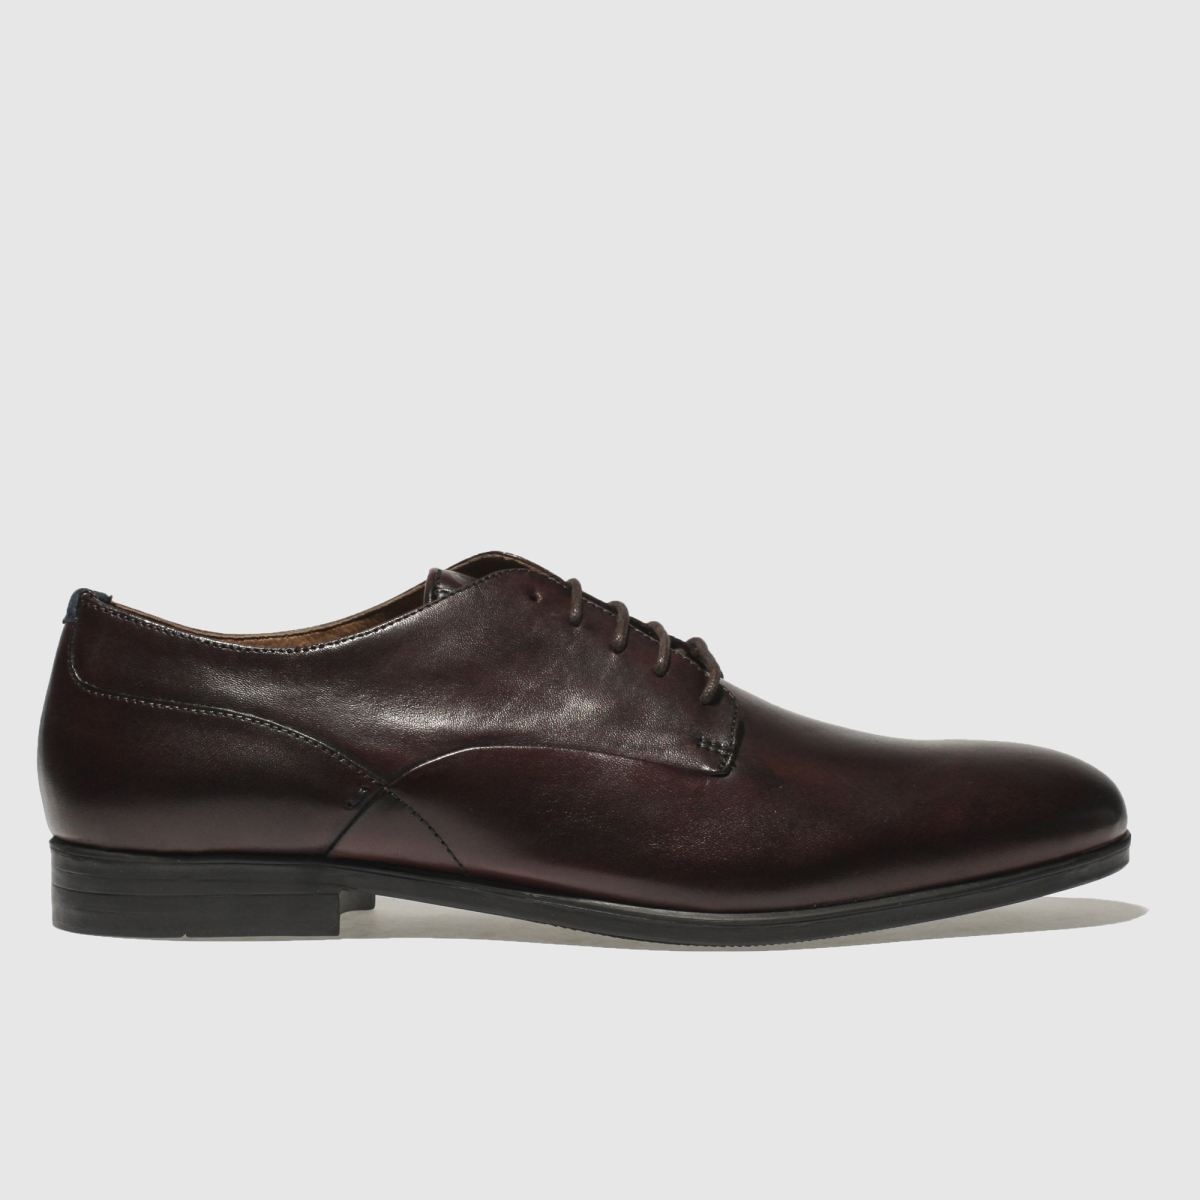 H by Hudson H By Hudson Burgundy Axminster Shoes